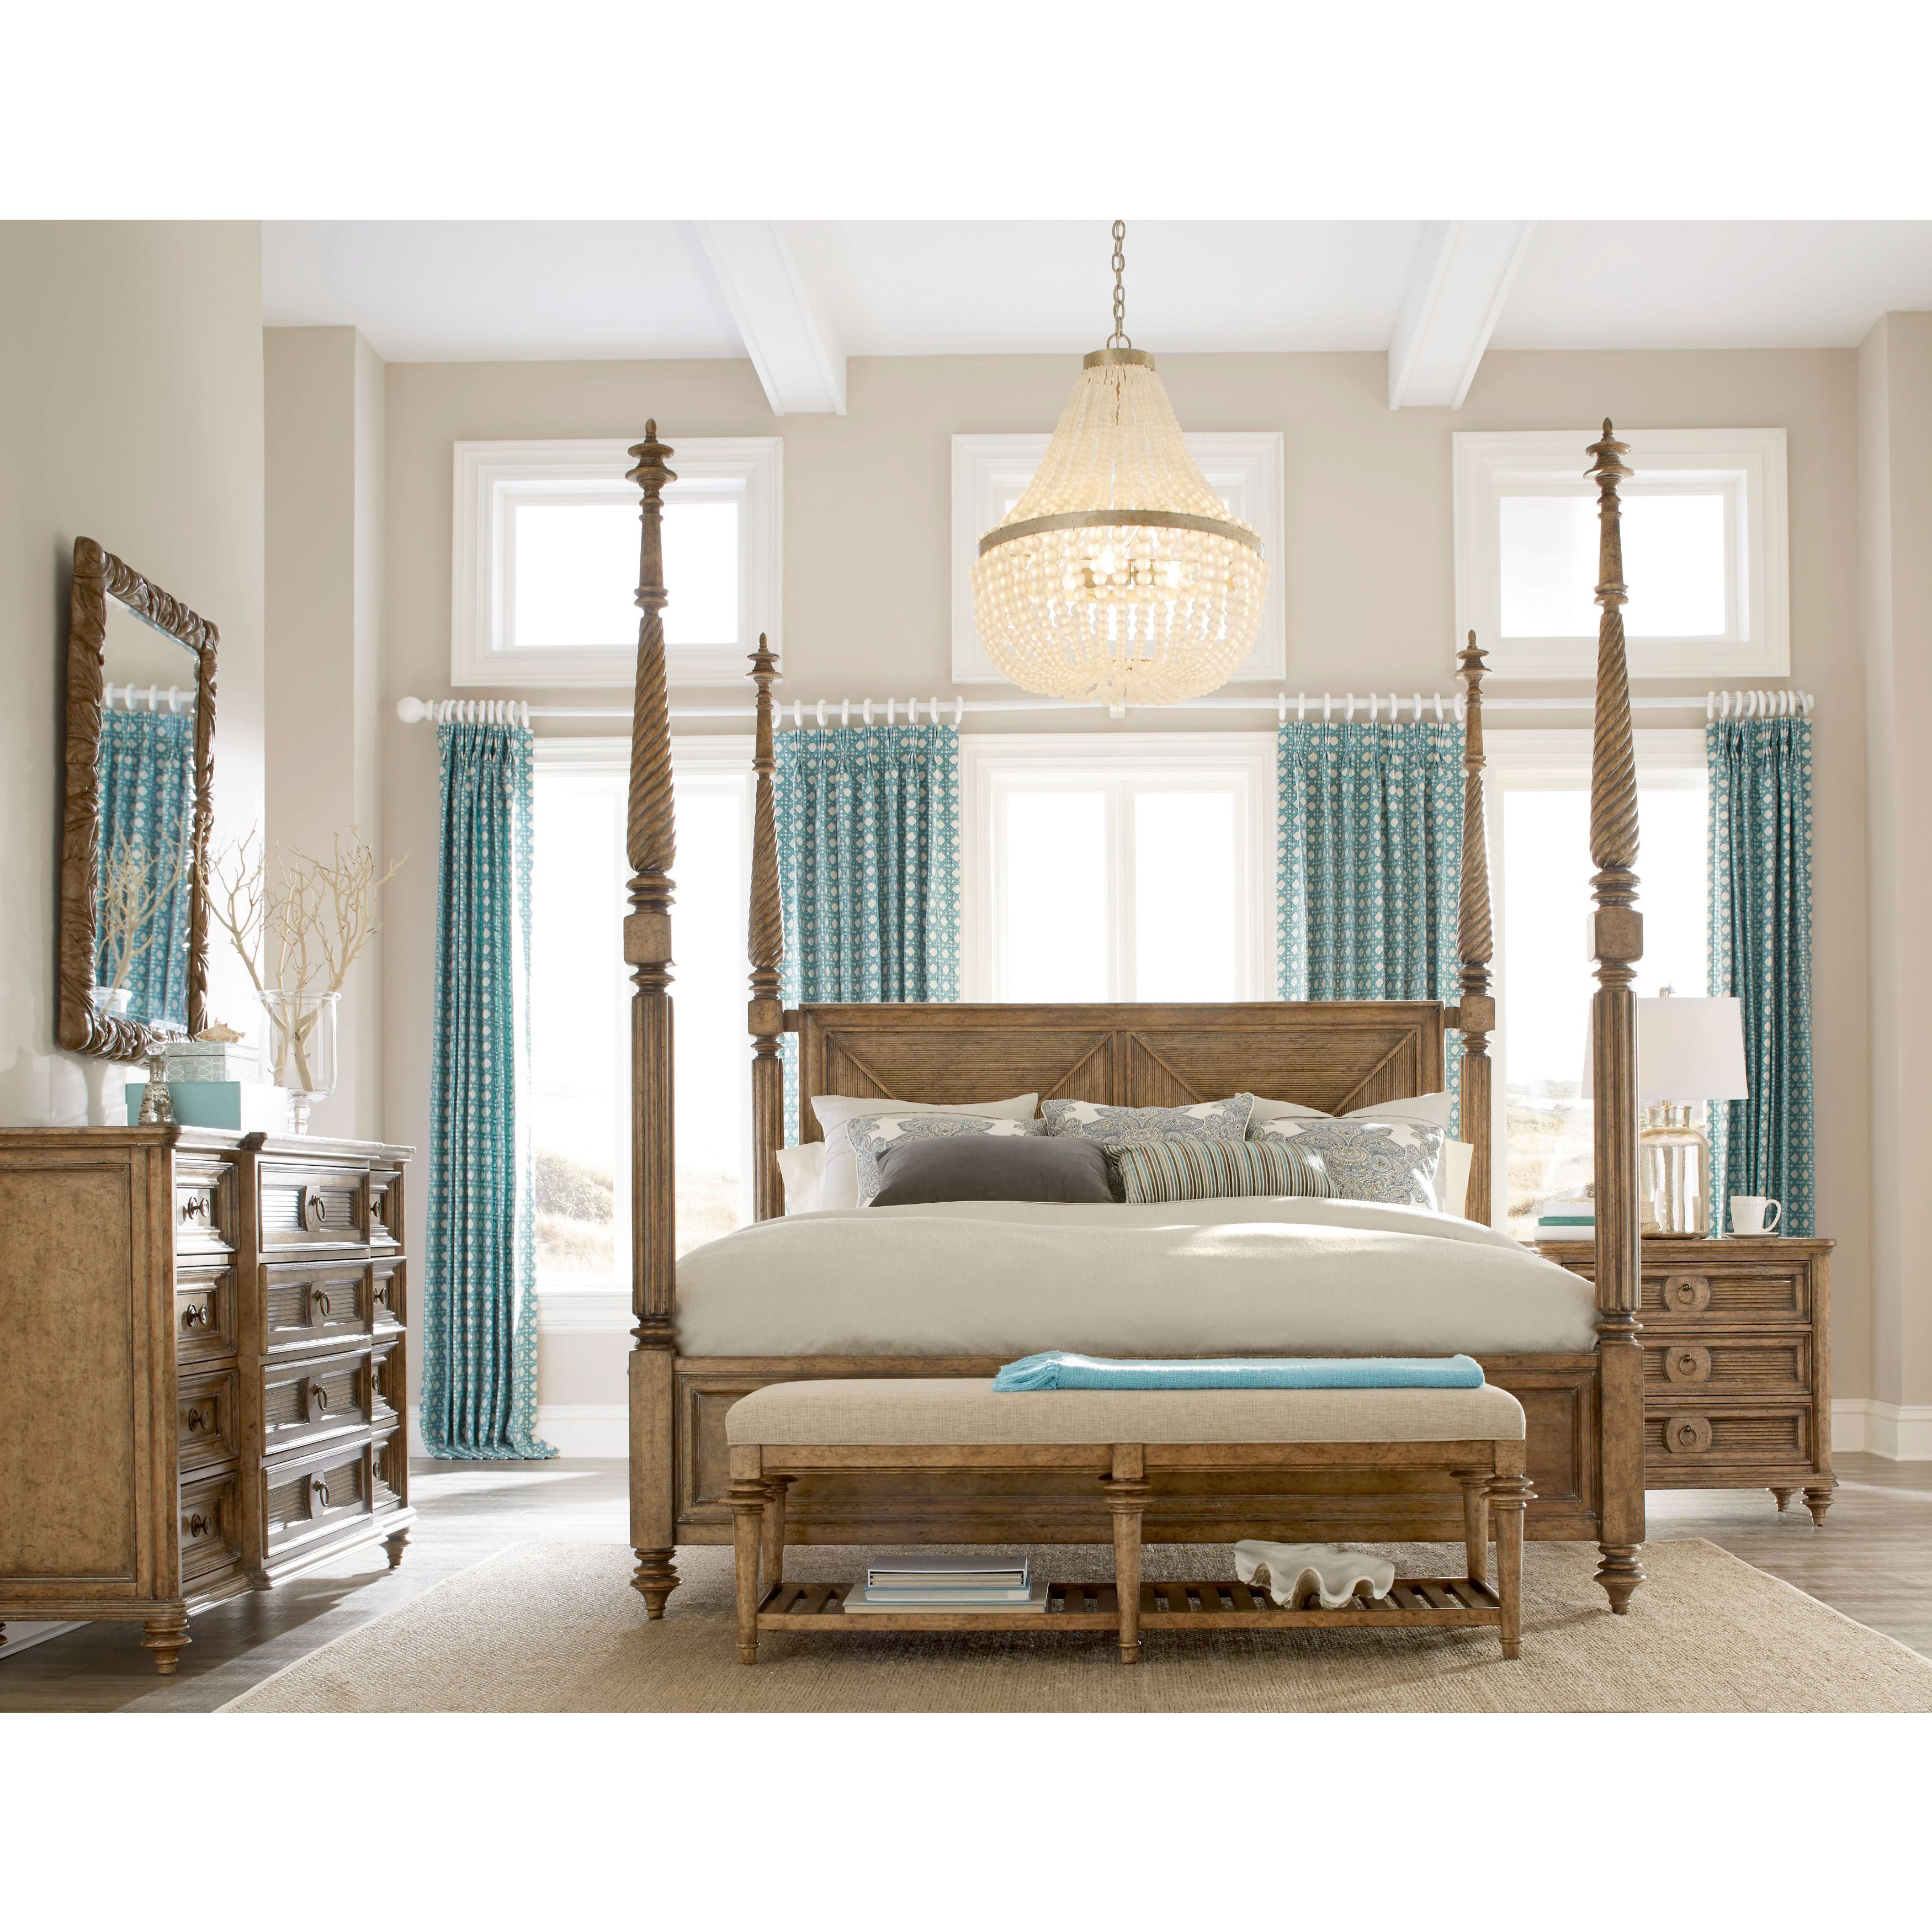 A R T Furniture Pavilion California King Poster Bed Canopy Free Shipping Today 12991153